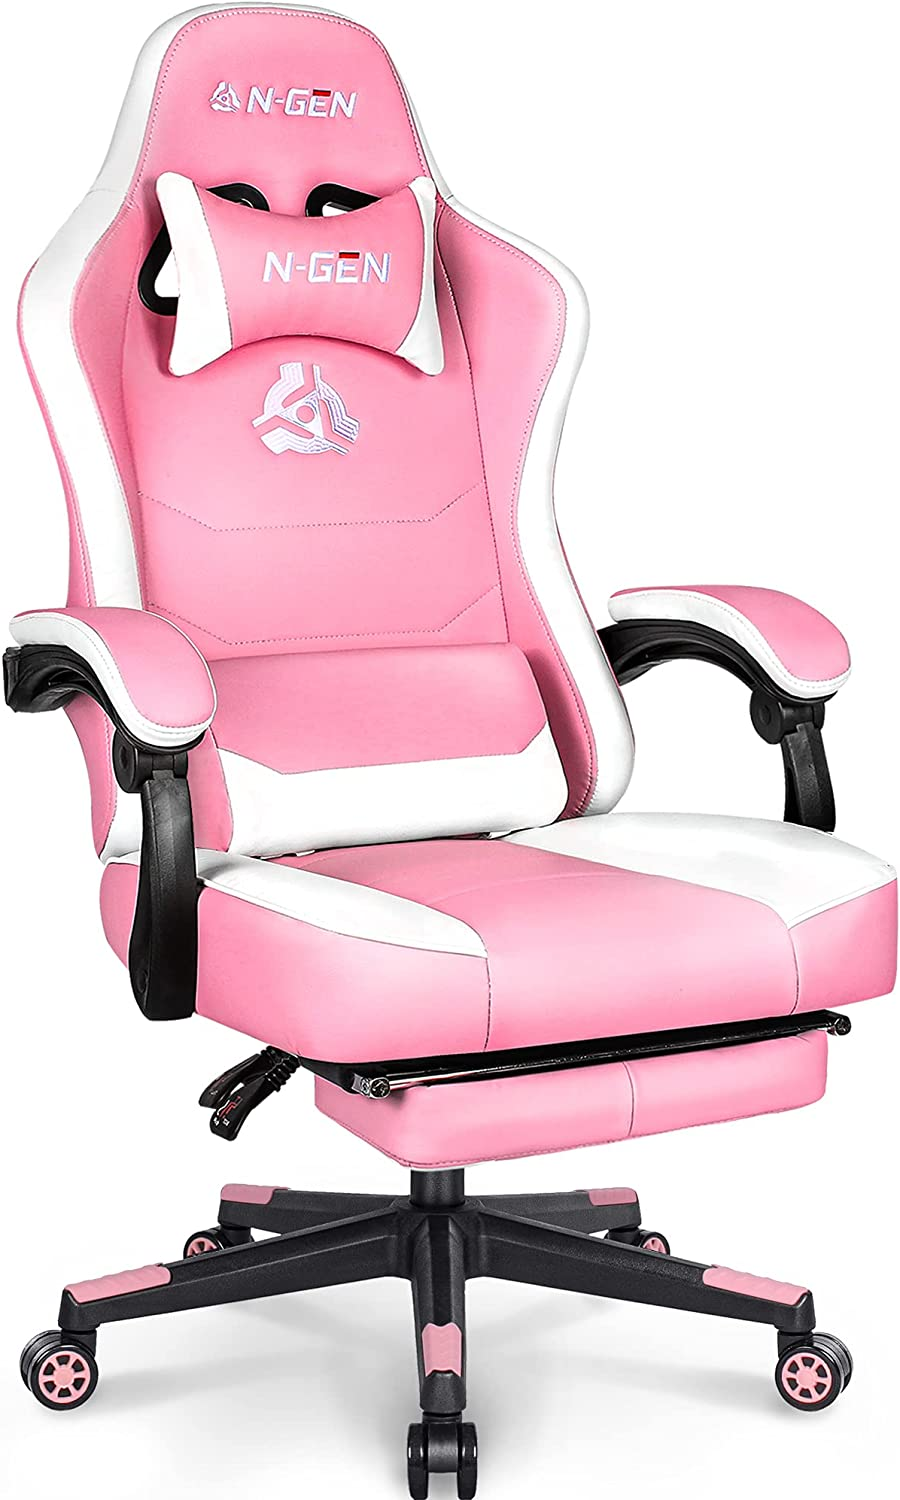 N-GEN Gaming Limited price Chair with Footrest Style Time sale Leather Seat PU Levelled